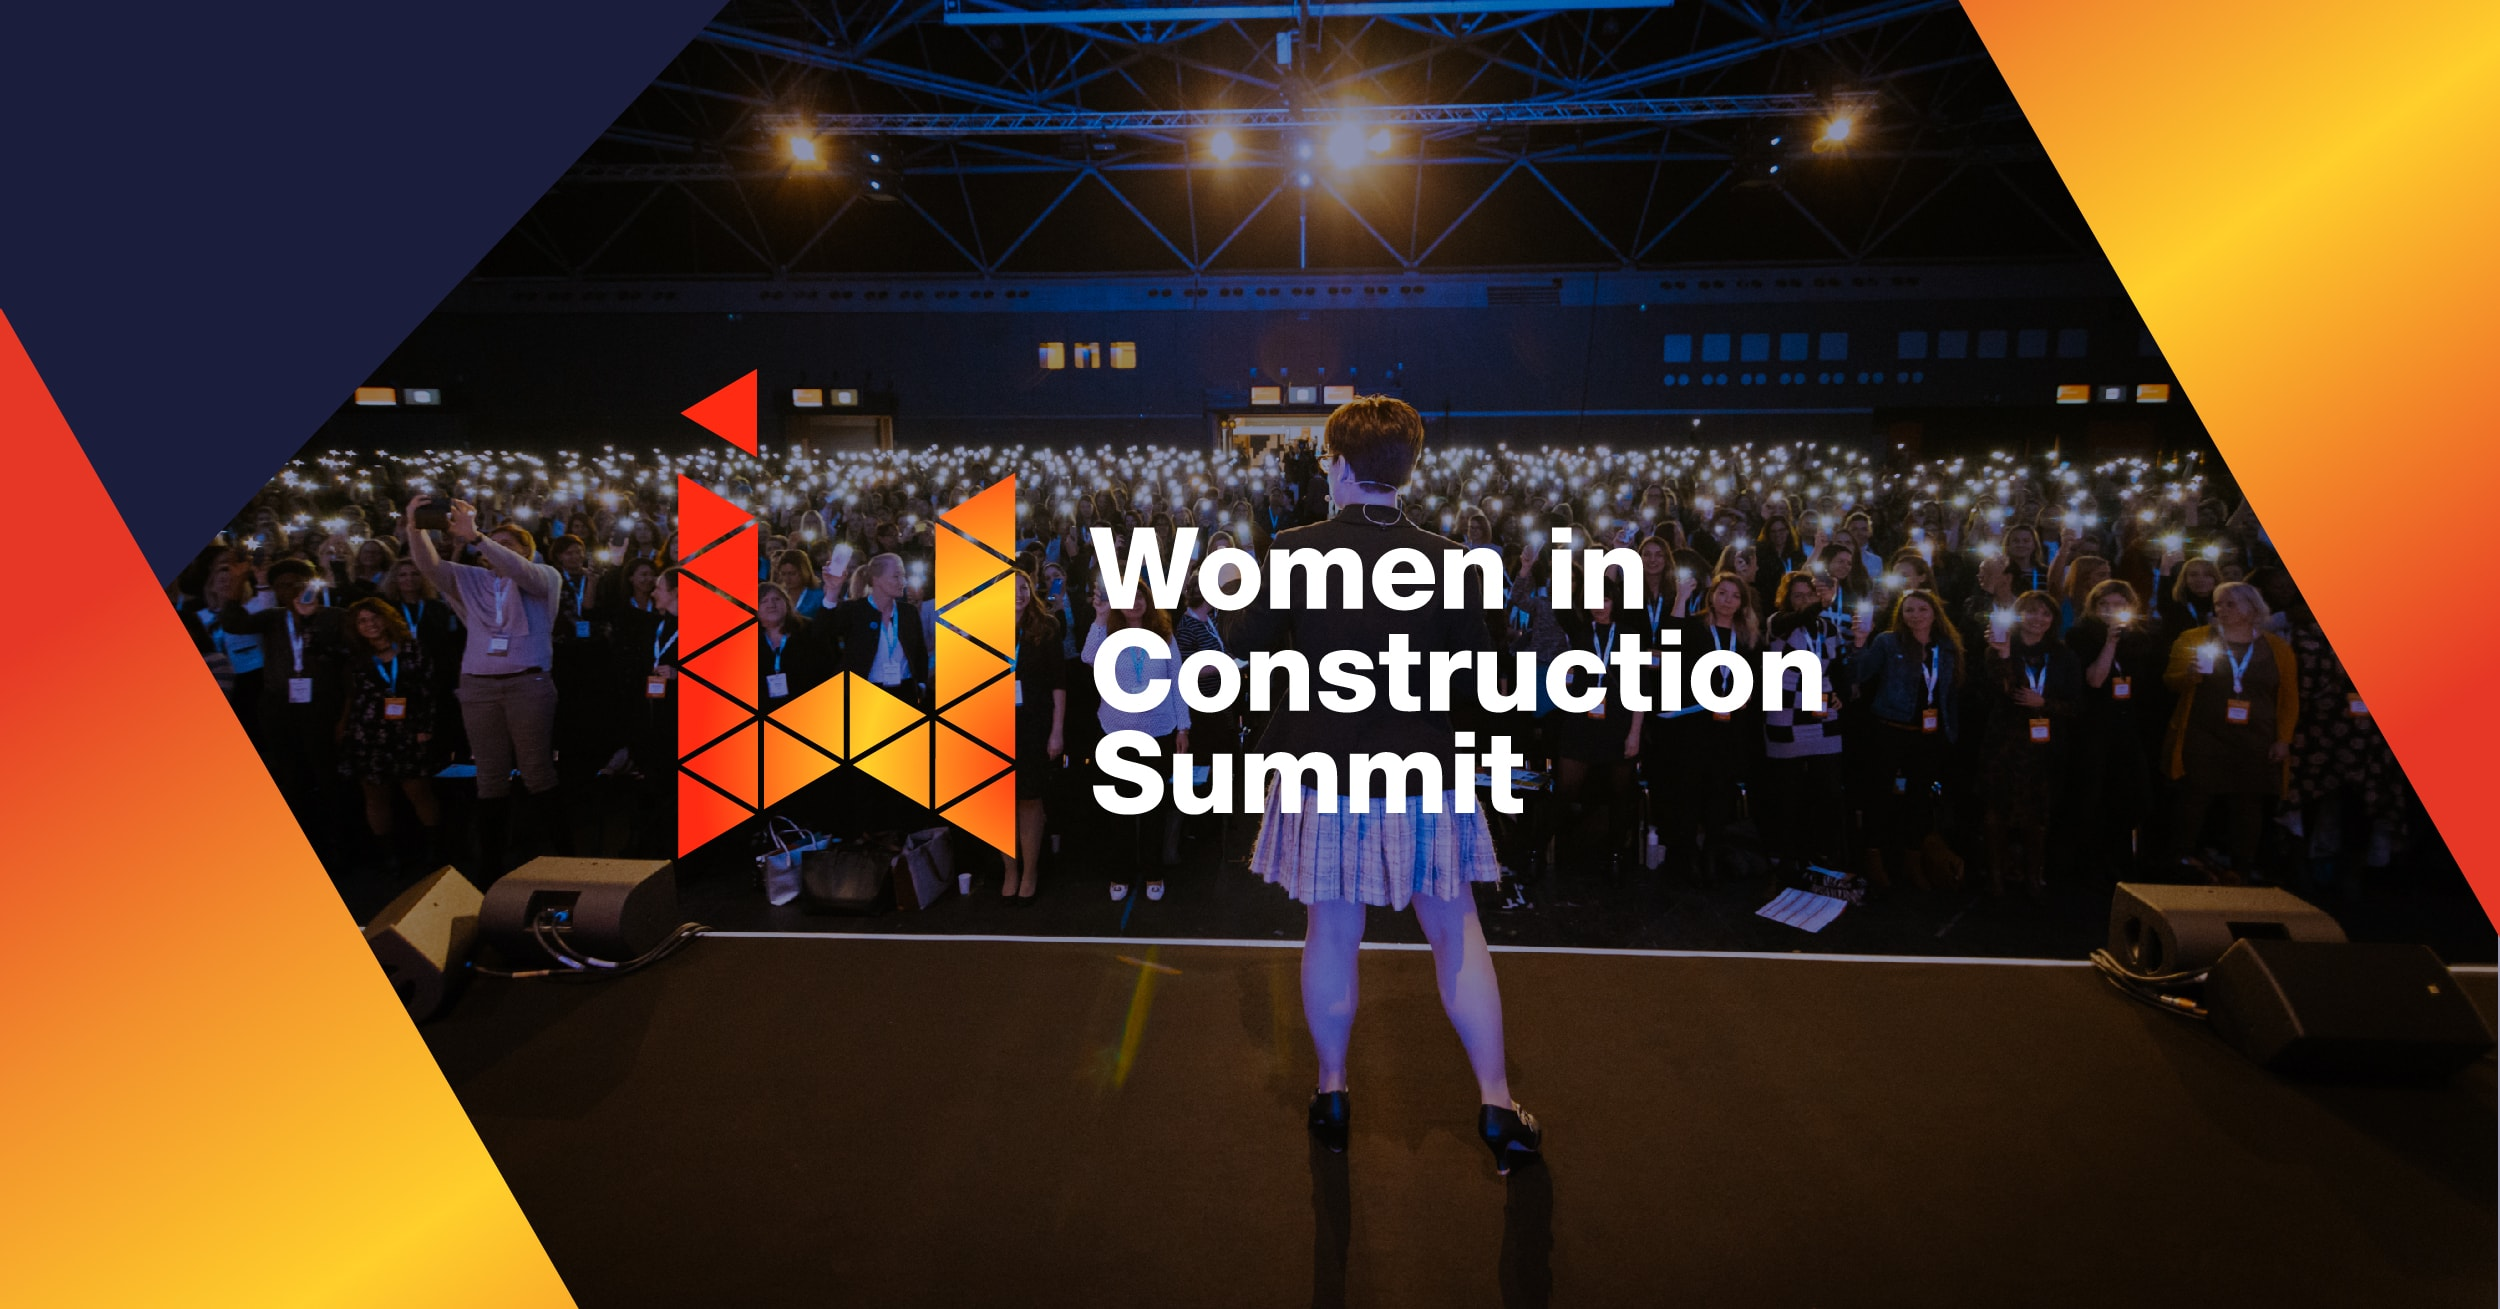 Women in Construction in London Summit